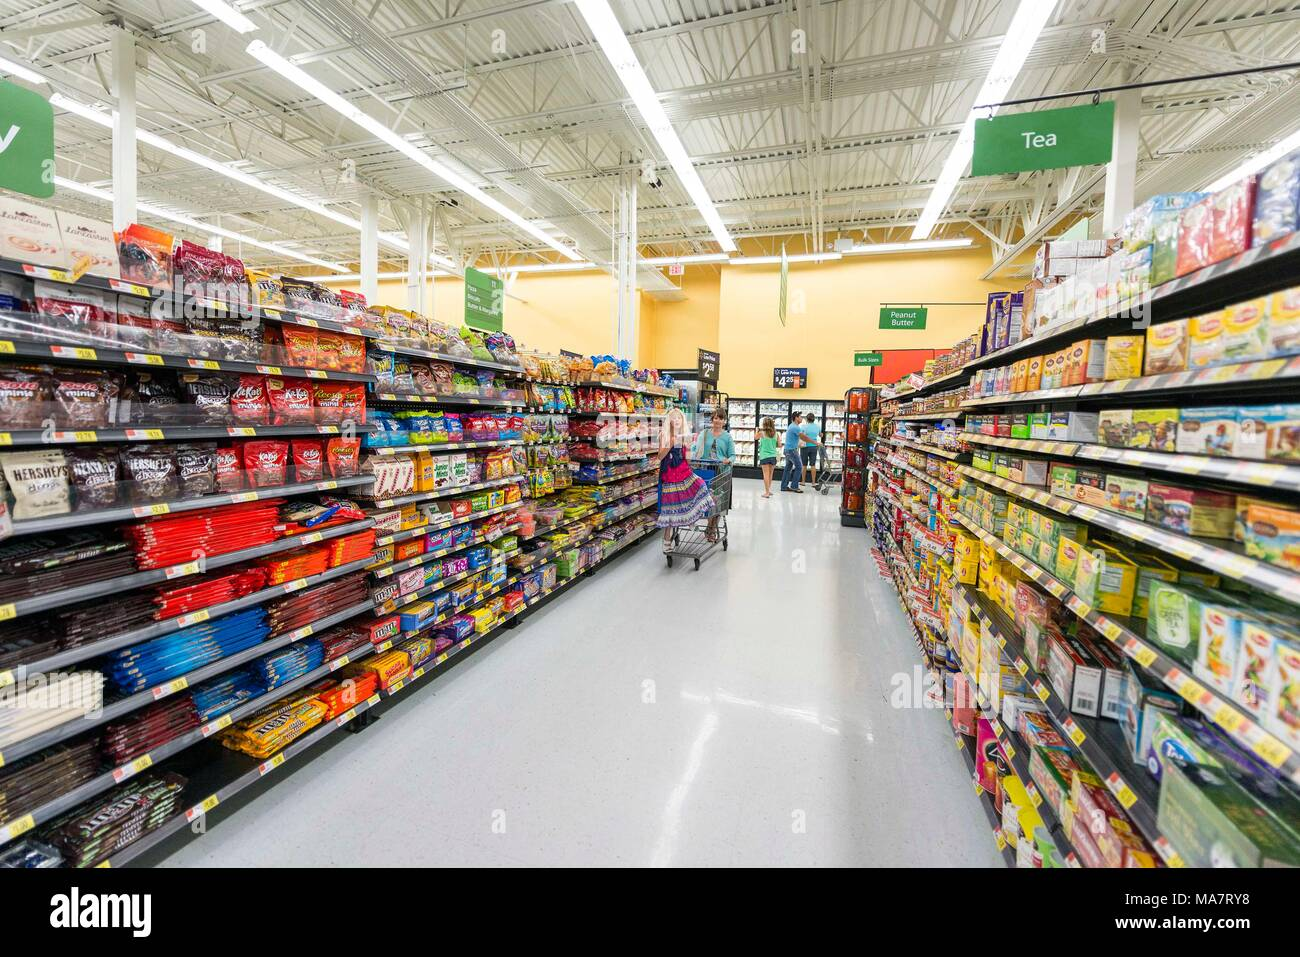 No price mark-up – Walmart online groceries carry the same everyday low prices as local Walmart stores, no subscription fee required. Save time & money with free pickup – We offer customers the convenience of shopping online and the ease of quickly picking up groceries without having to leave their cars, all at .